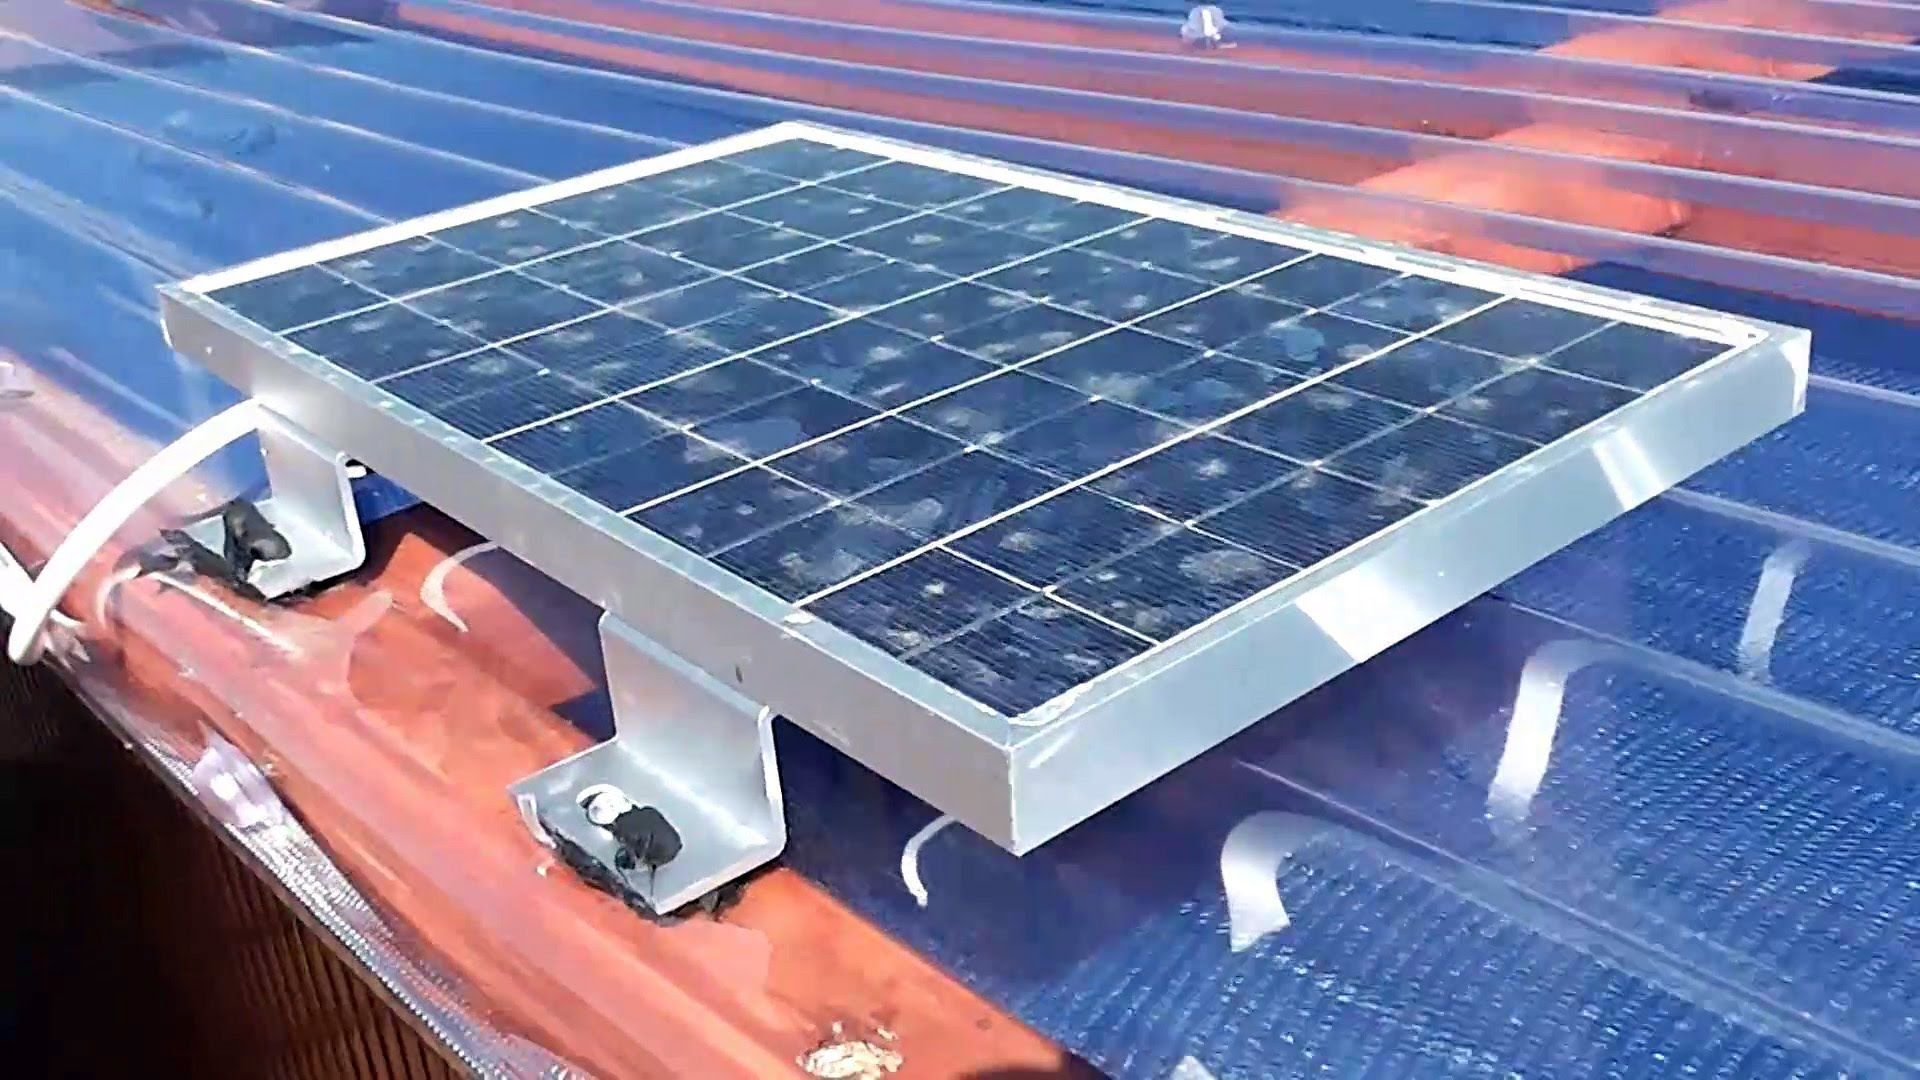 12v solar power installation for a small shed home steading